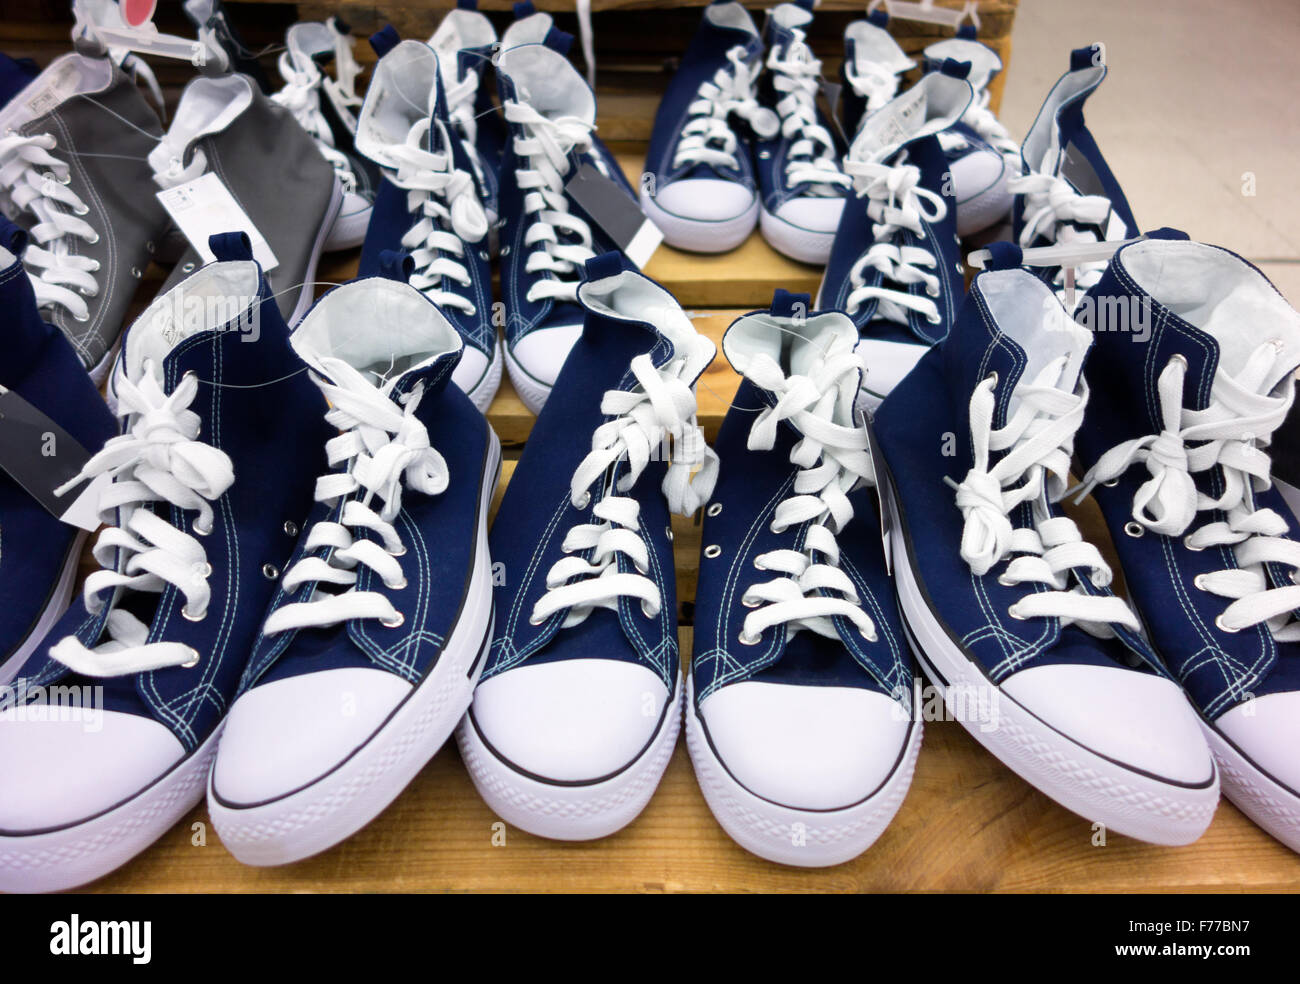 A lots of converse shoes in store - Stock Image